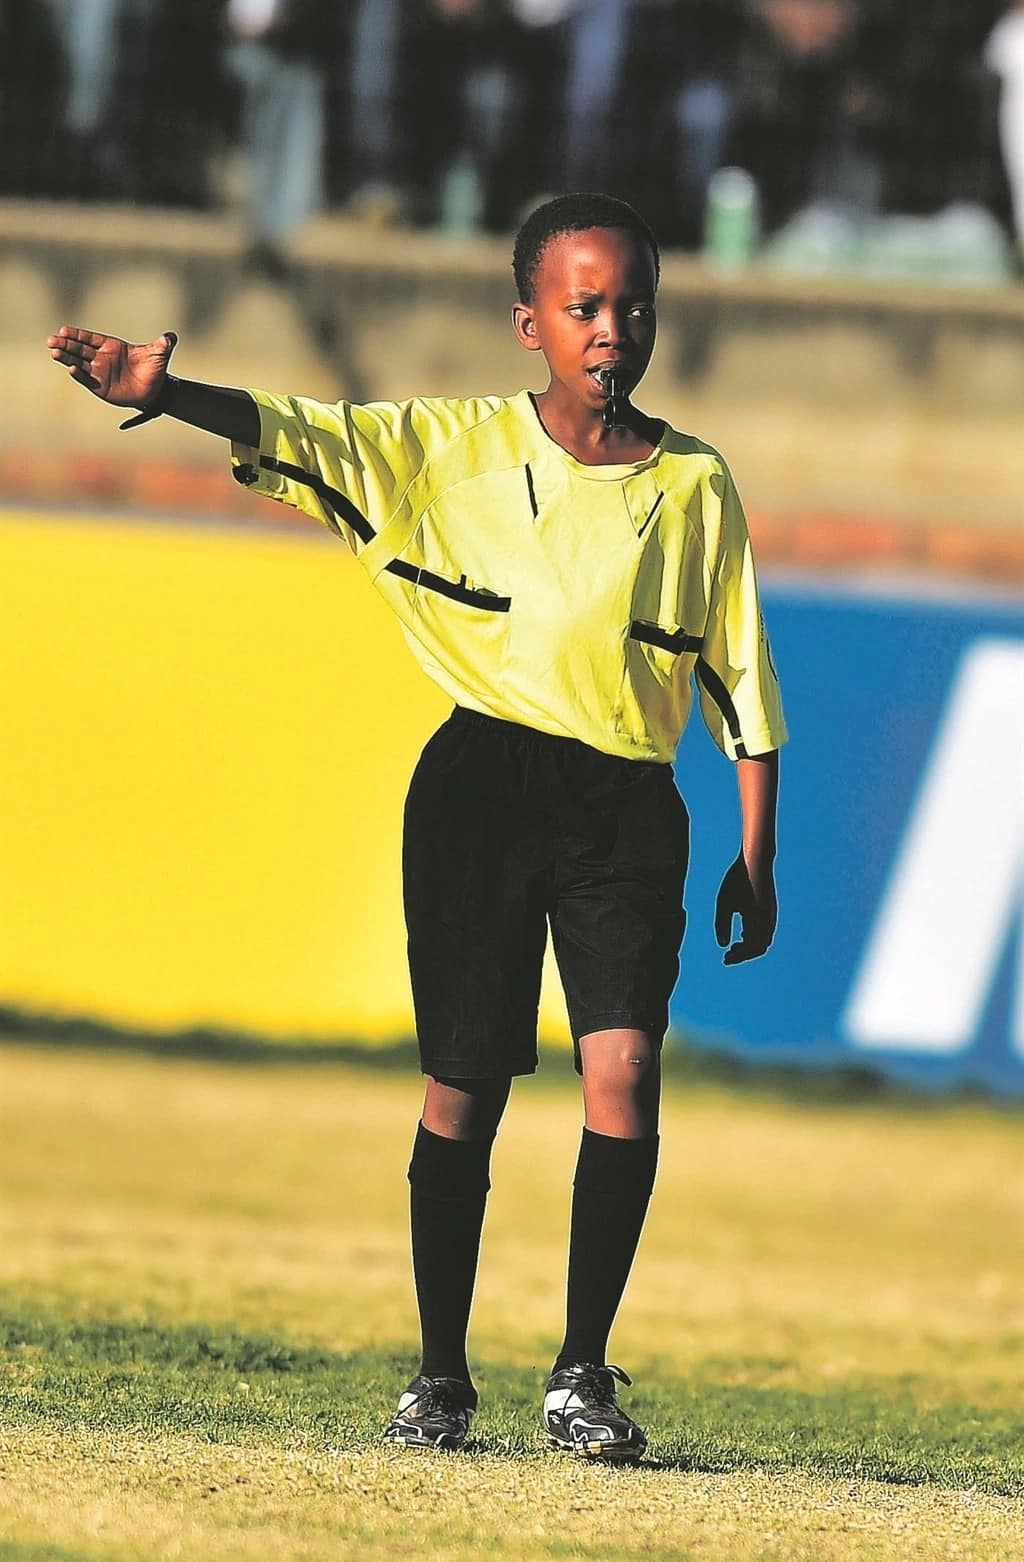 Famous soccer referee helps young match official achieve his dreams